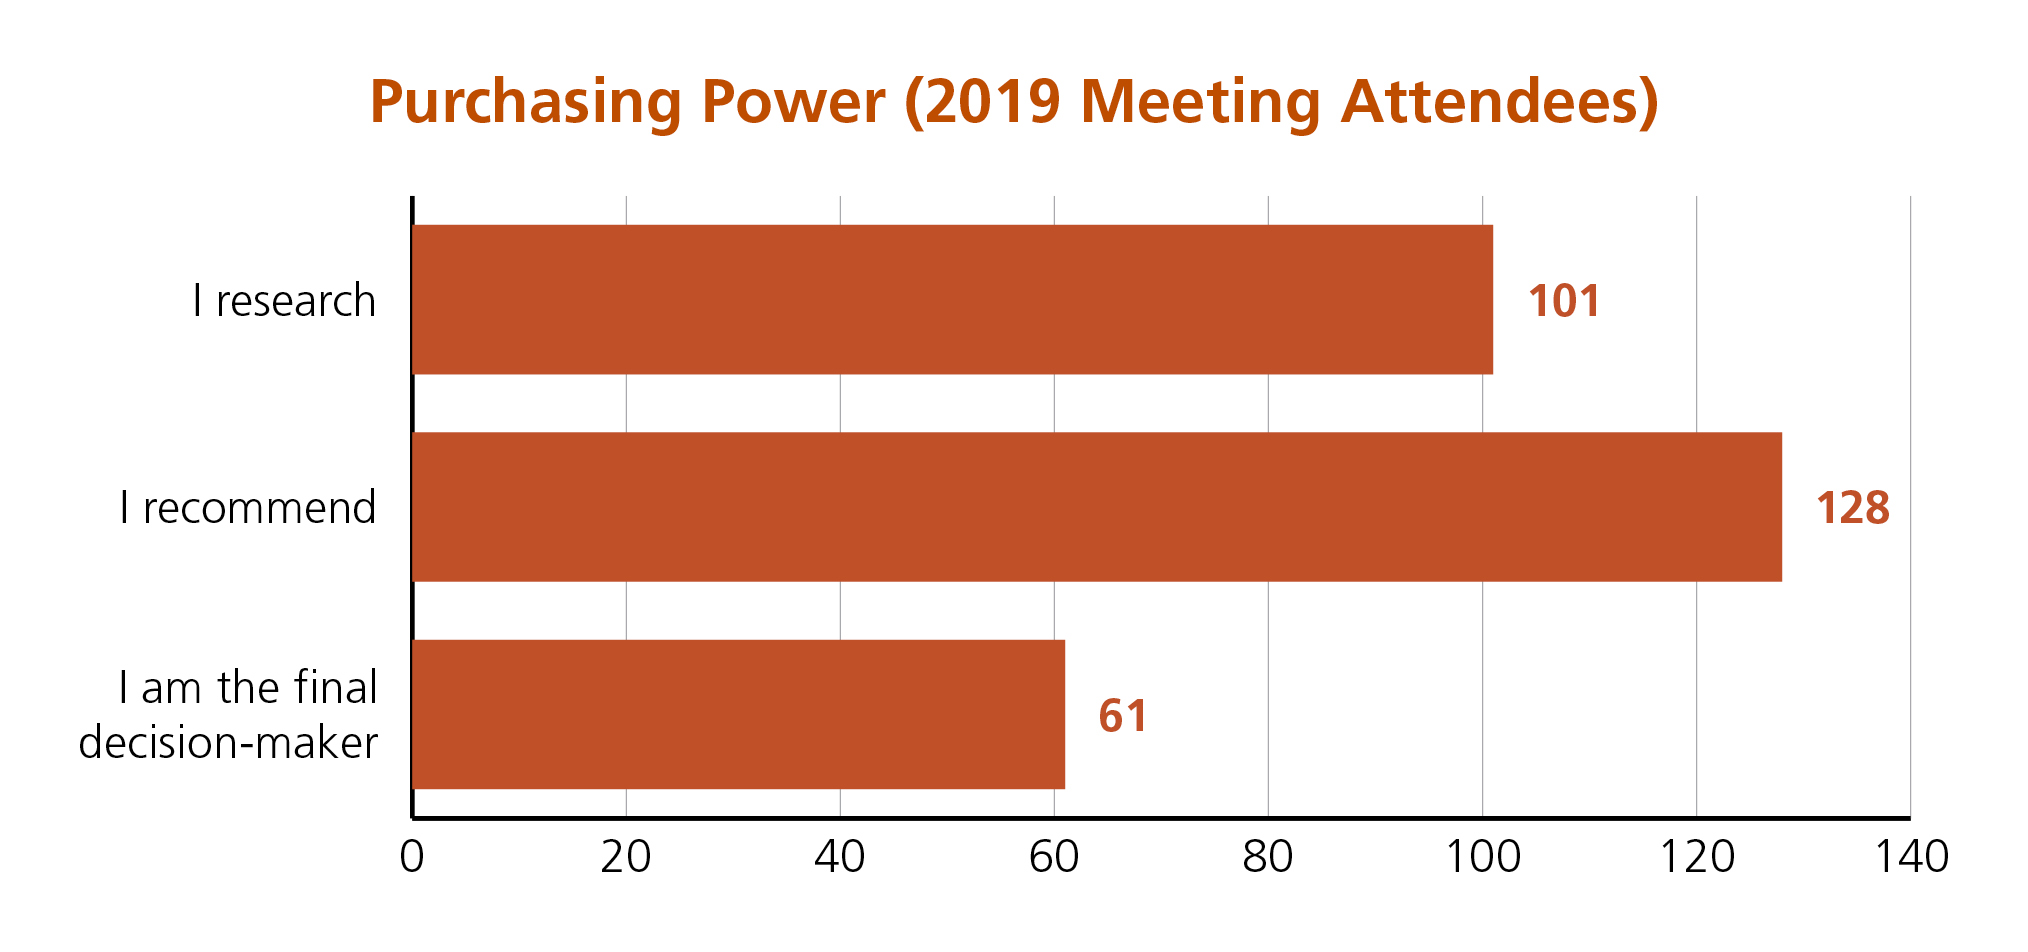 aamc-2020-gir-conference-attendees-purchasing-power